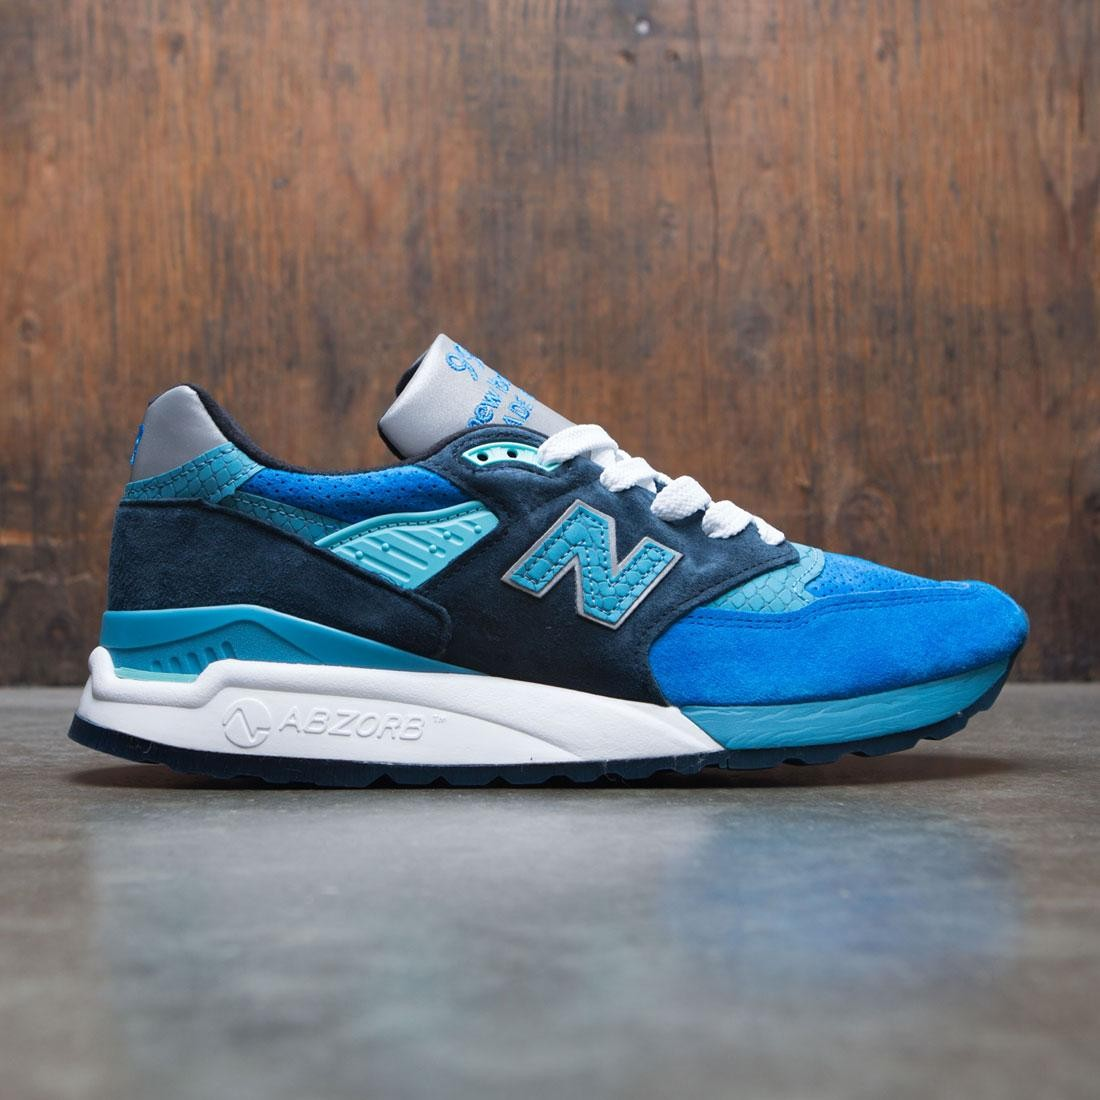 a236c8d3e New Balance Men 998 M998NE - Made In USA blue silver